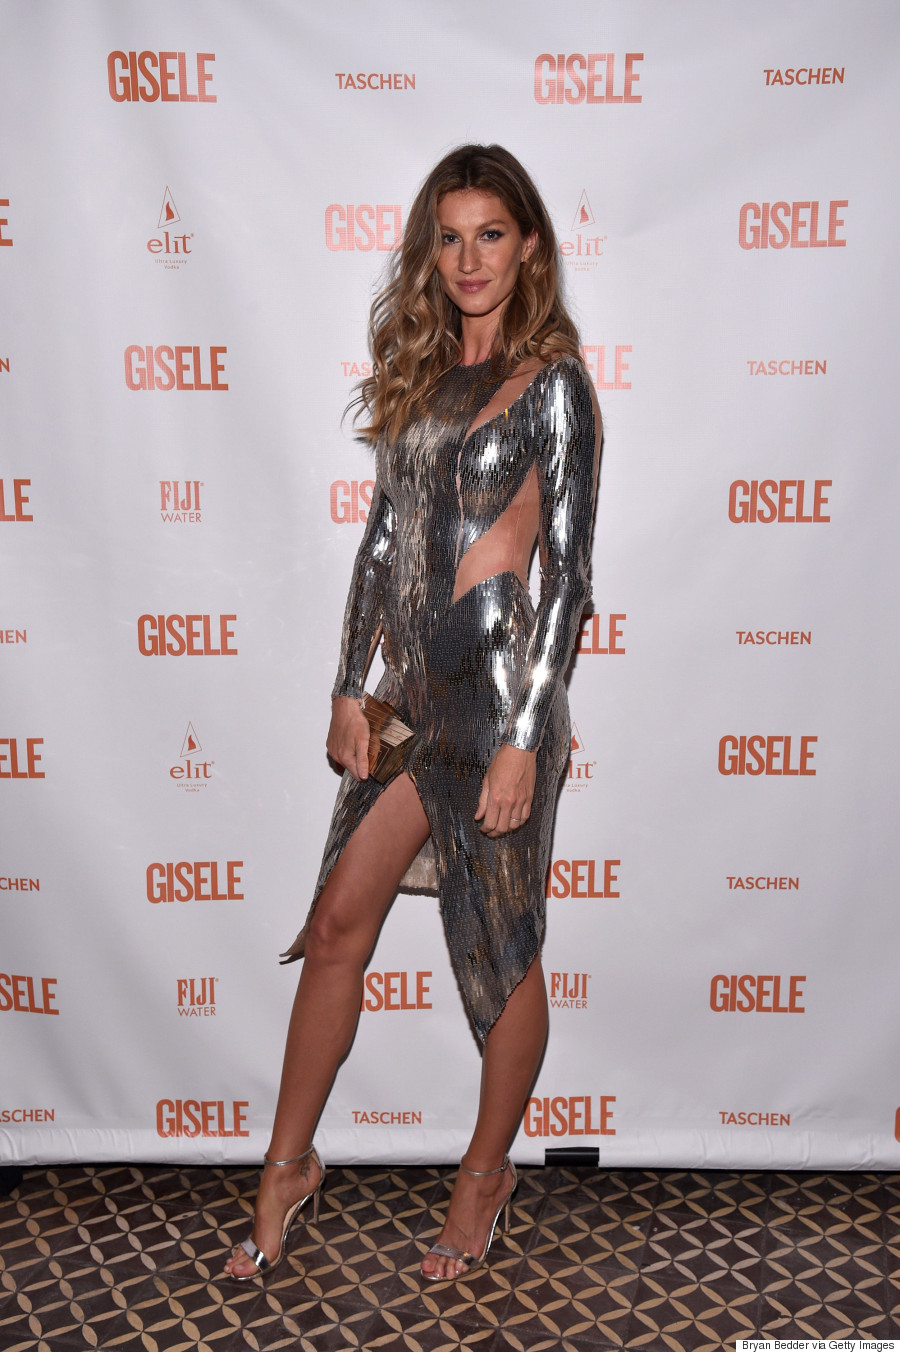 how tall is gisele bunchen